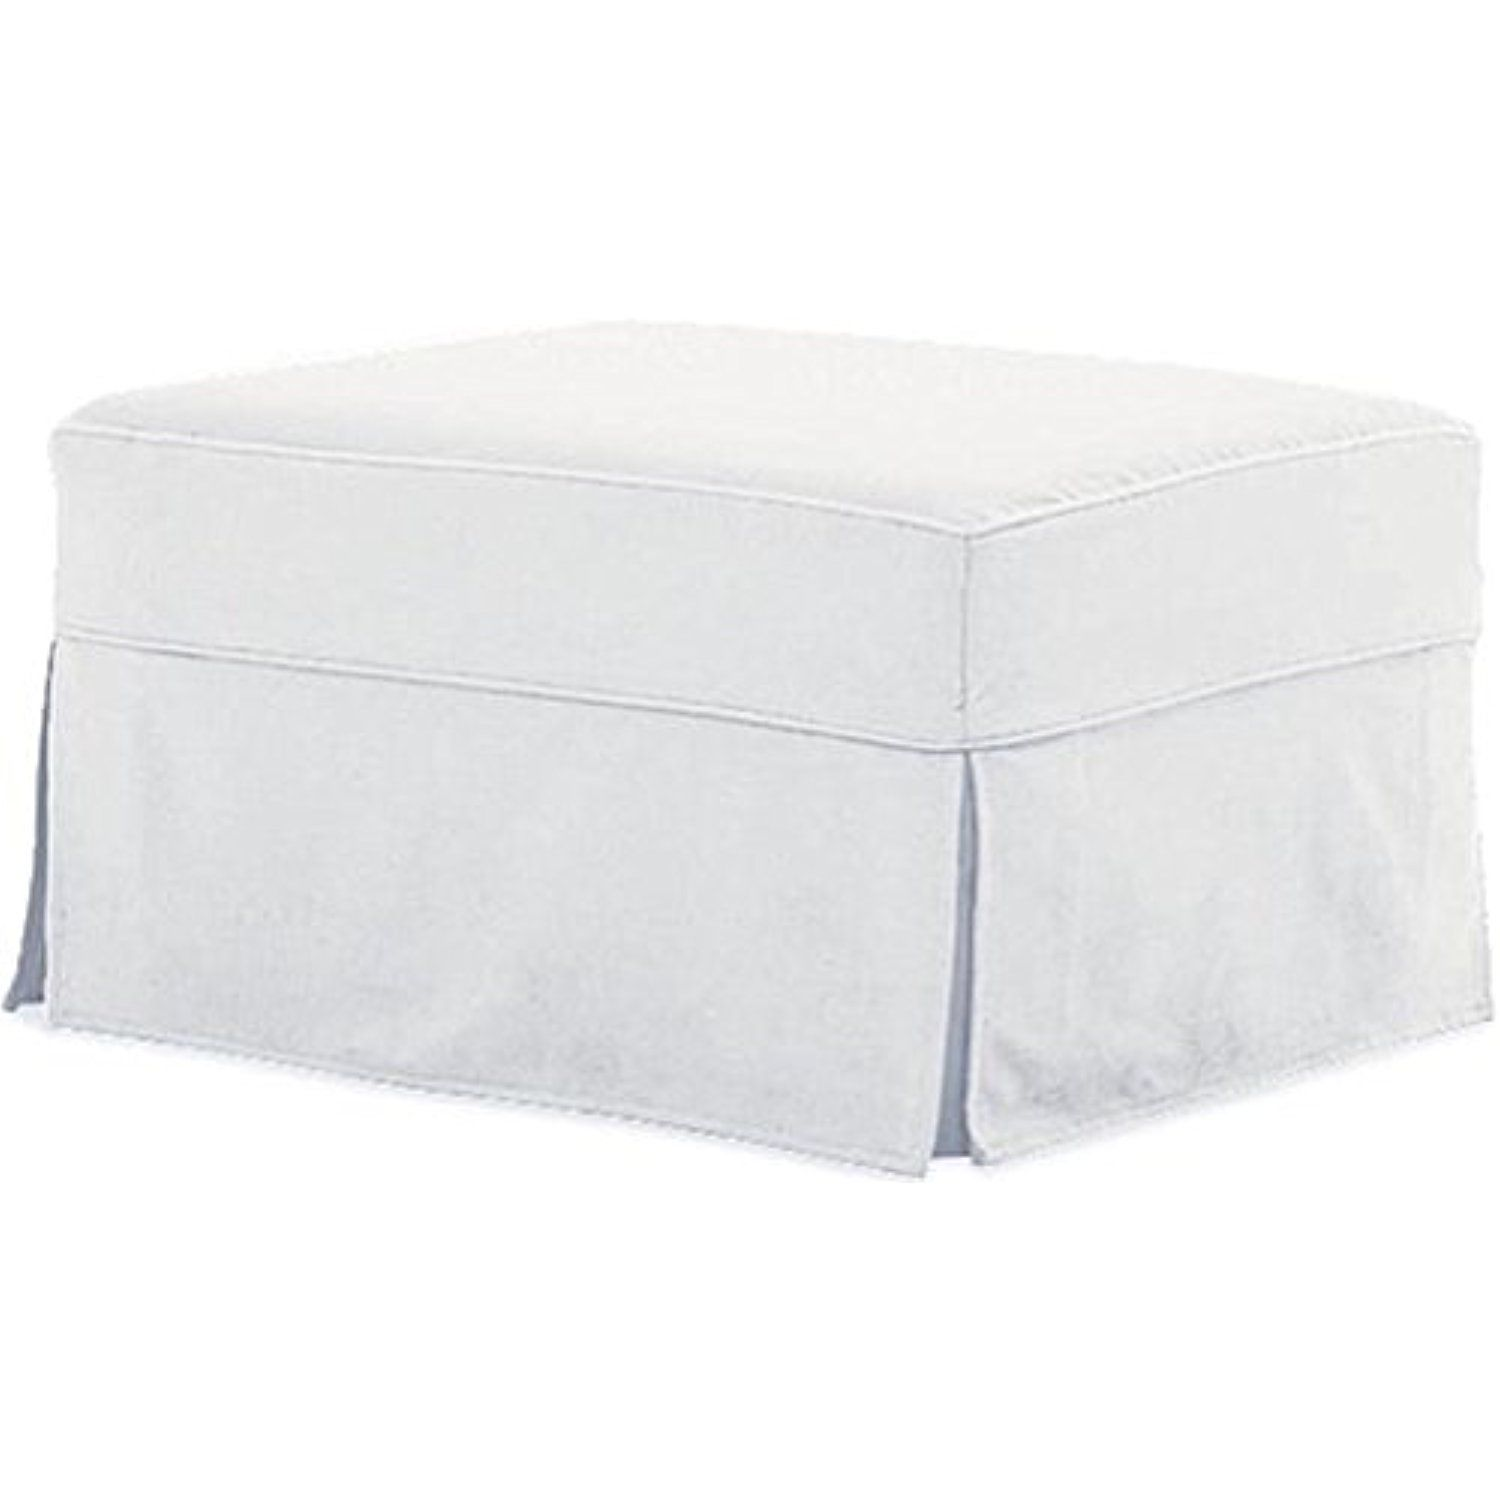 The Cotton Ottoman Slipcover Replacement It Fits Pottery